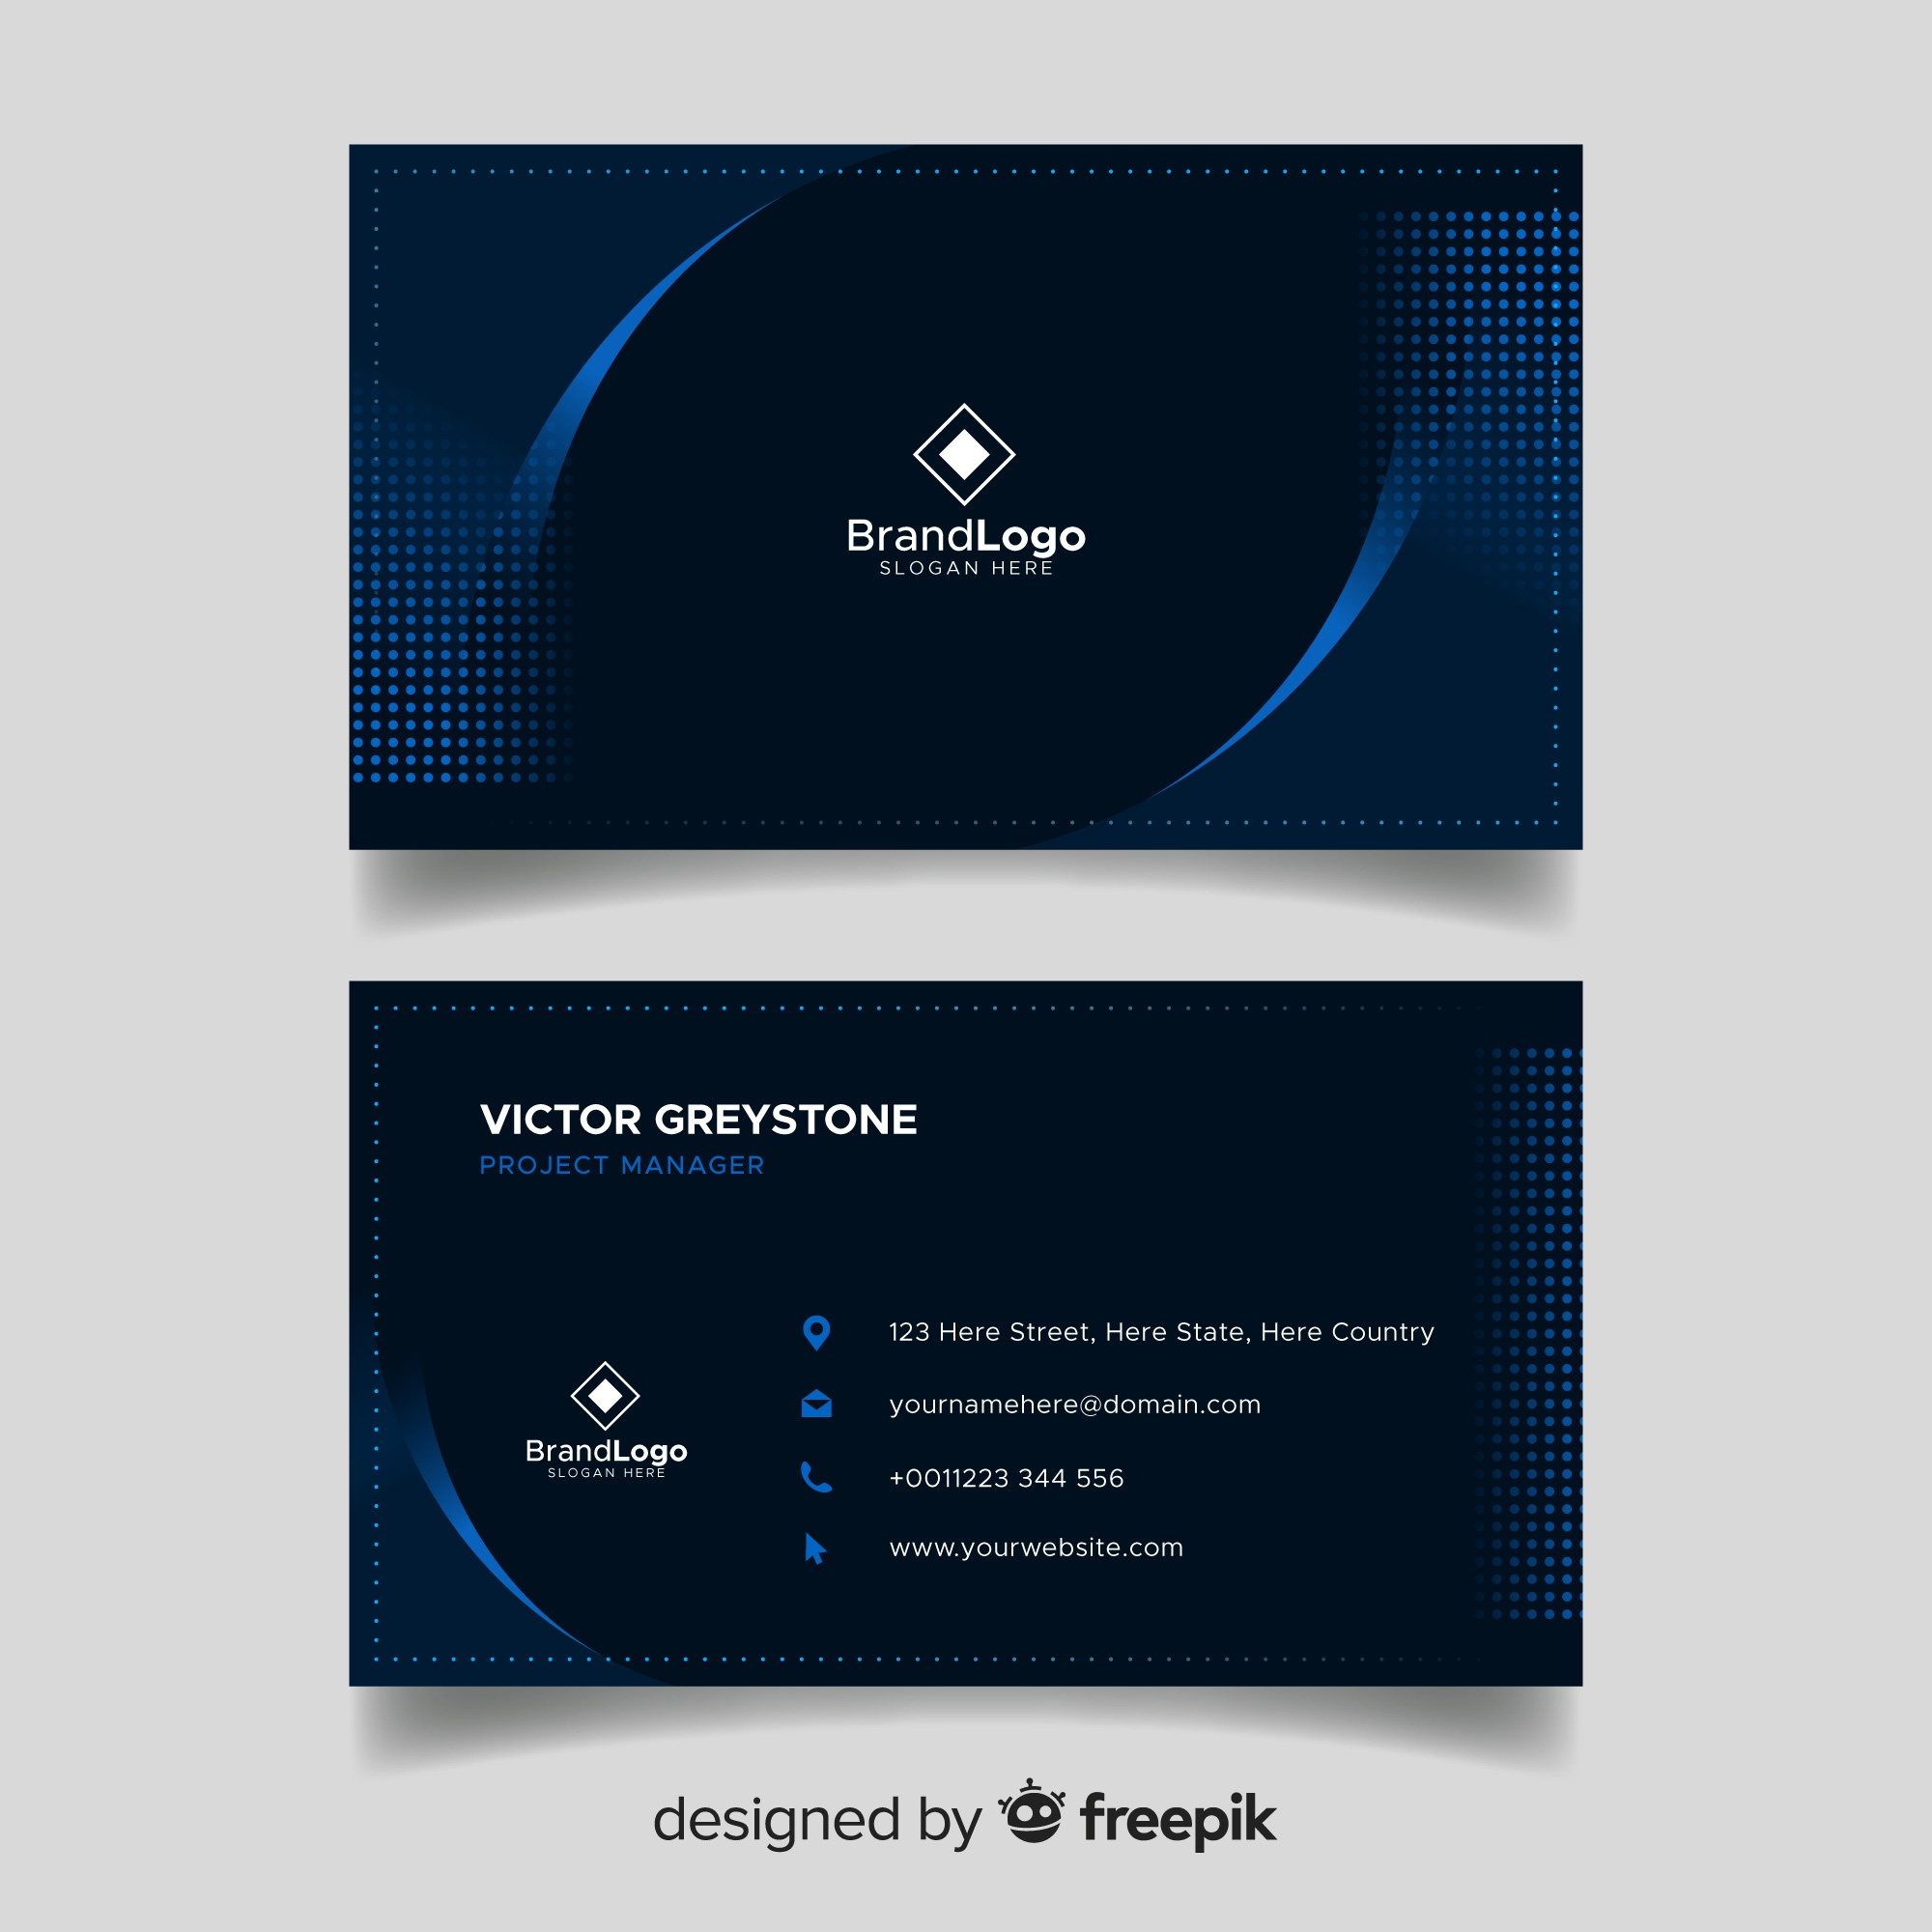 Elegant dark business card template design